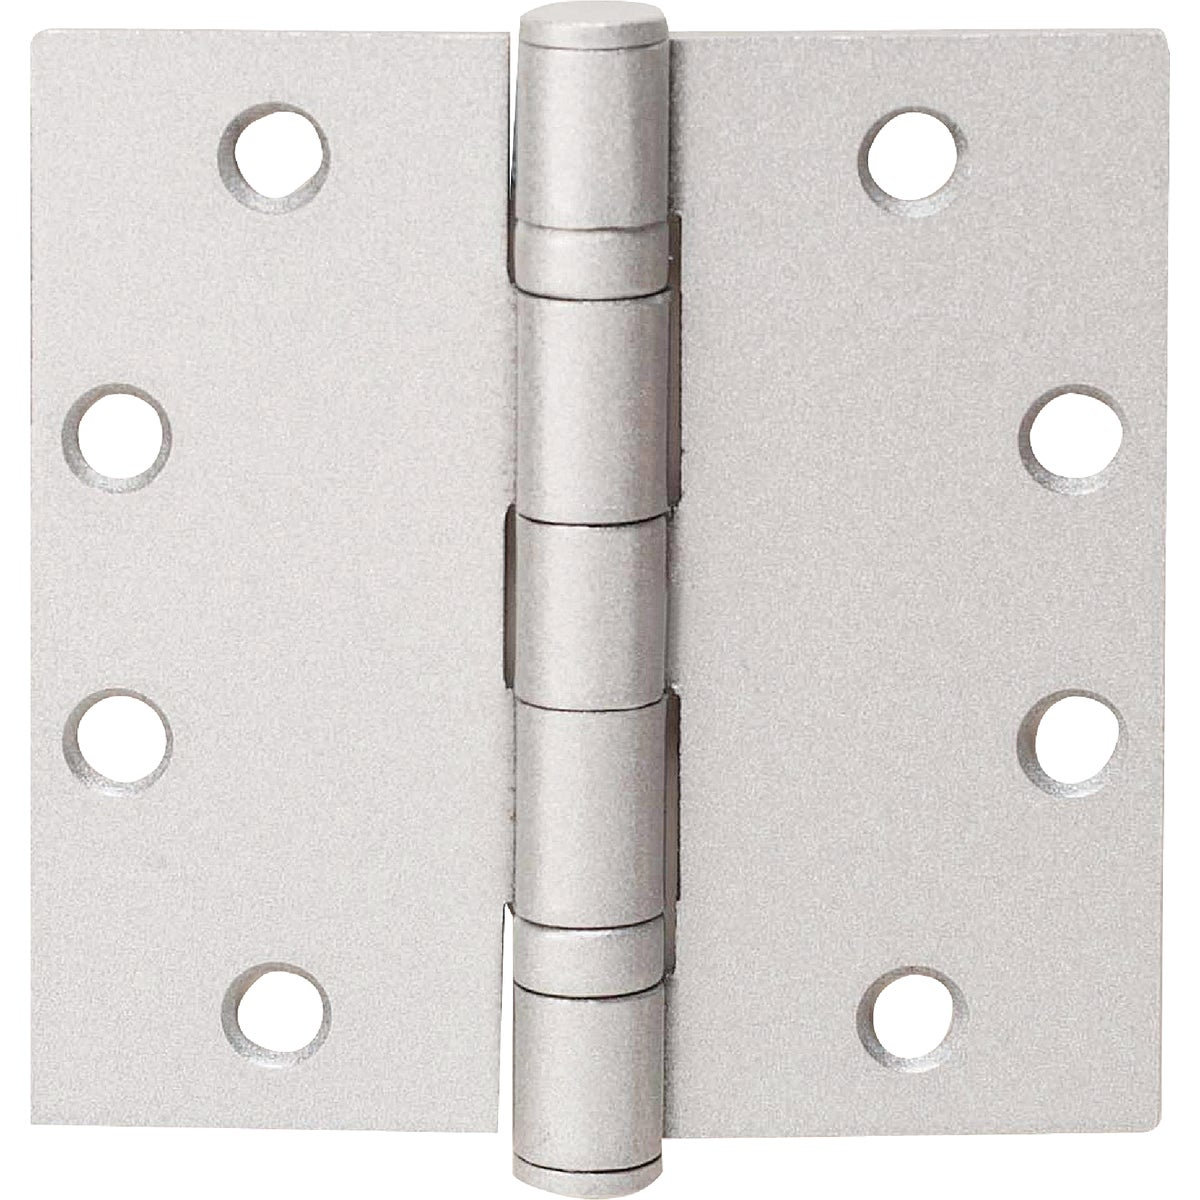 4.5 X 4.5 3PK HINGE 26D - HG100004 by Tell Mfg Inc